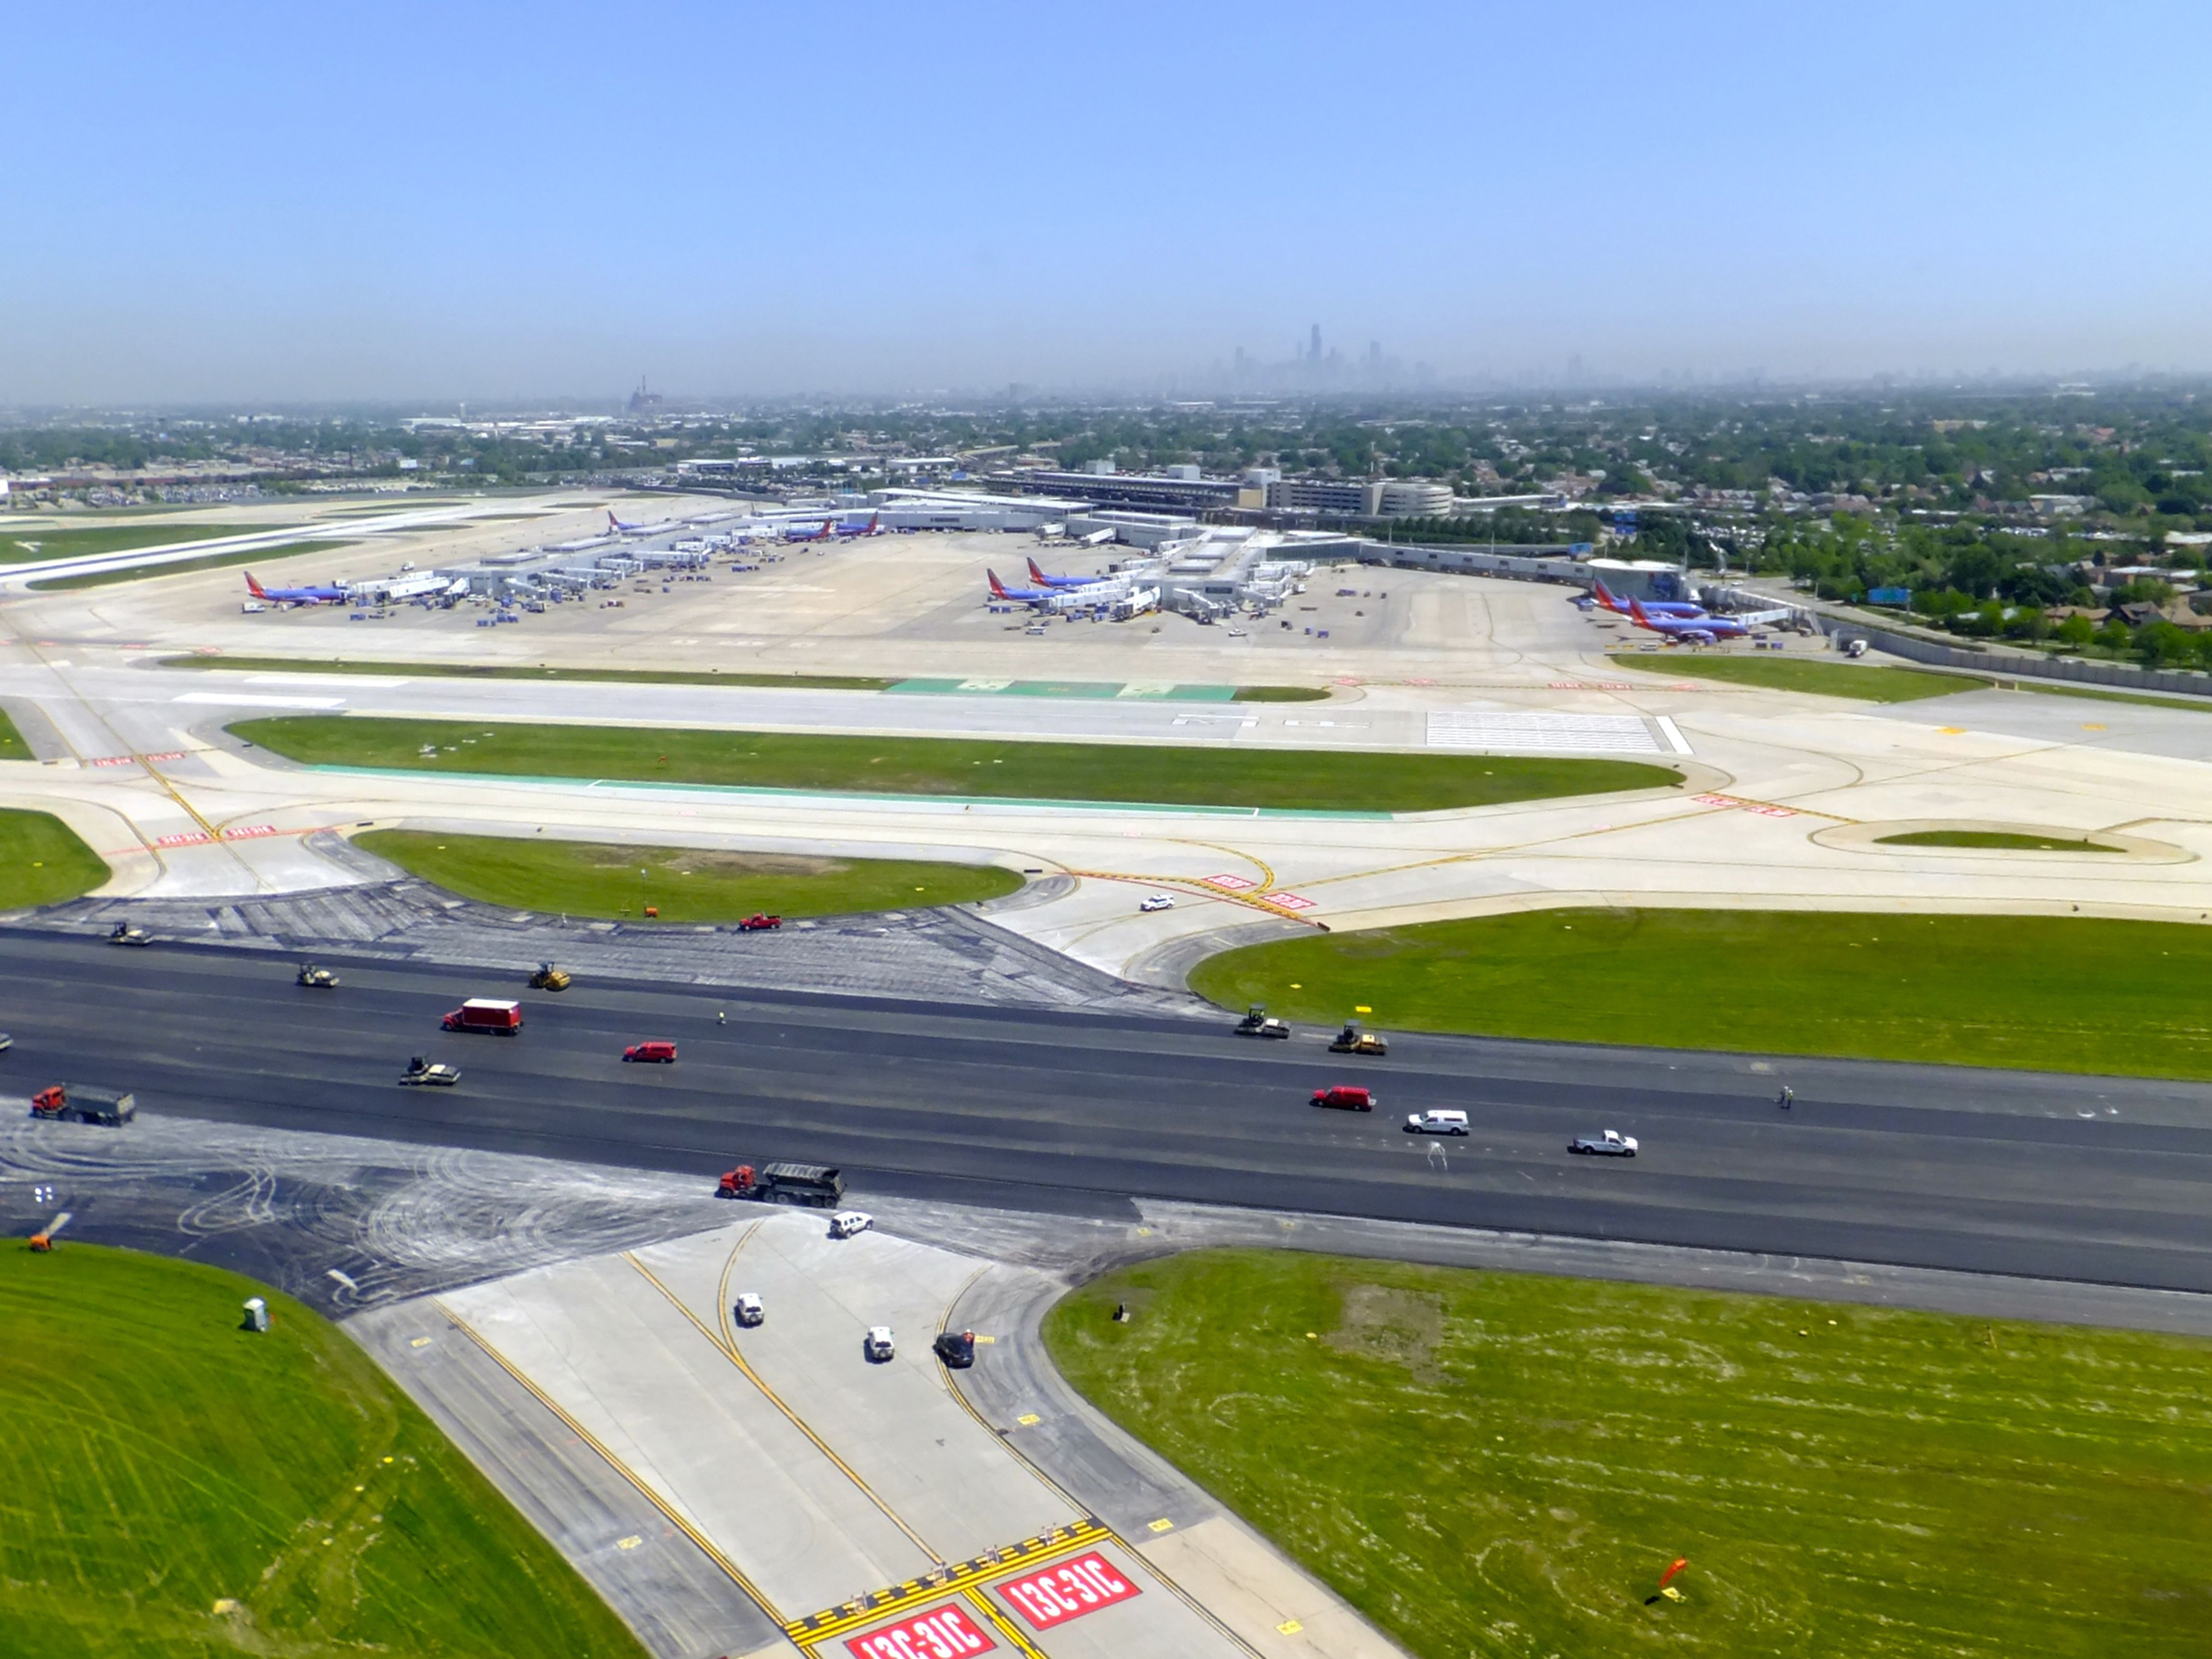 Aerial view of Chicago's Midway Airport